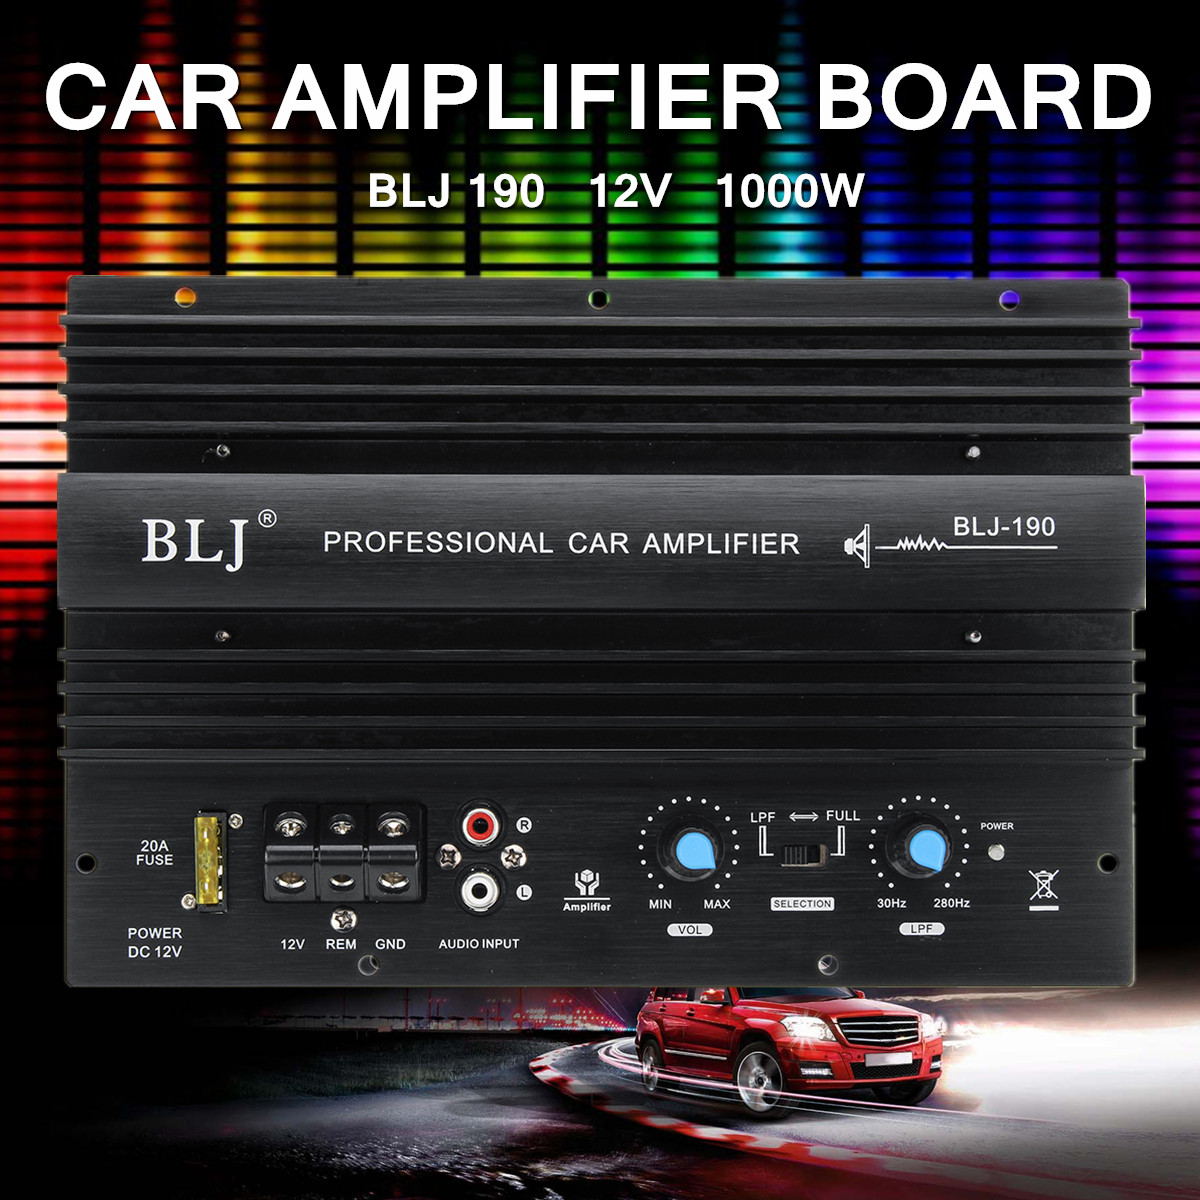 12V 1000W Mono Car Audio High Power Amplifier Amp Board Powerful Bass Subwoofer 105dBA Thermal Overload Protect Powerful Bass kroak 12v 600w car amplifier board powerful subwoofer car audio amplifier mono stereo power amplifier bass black